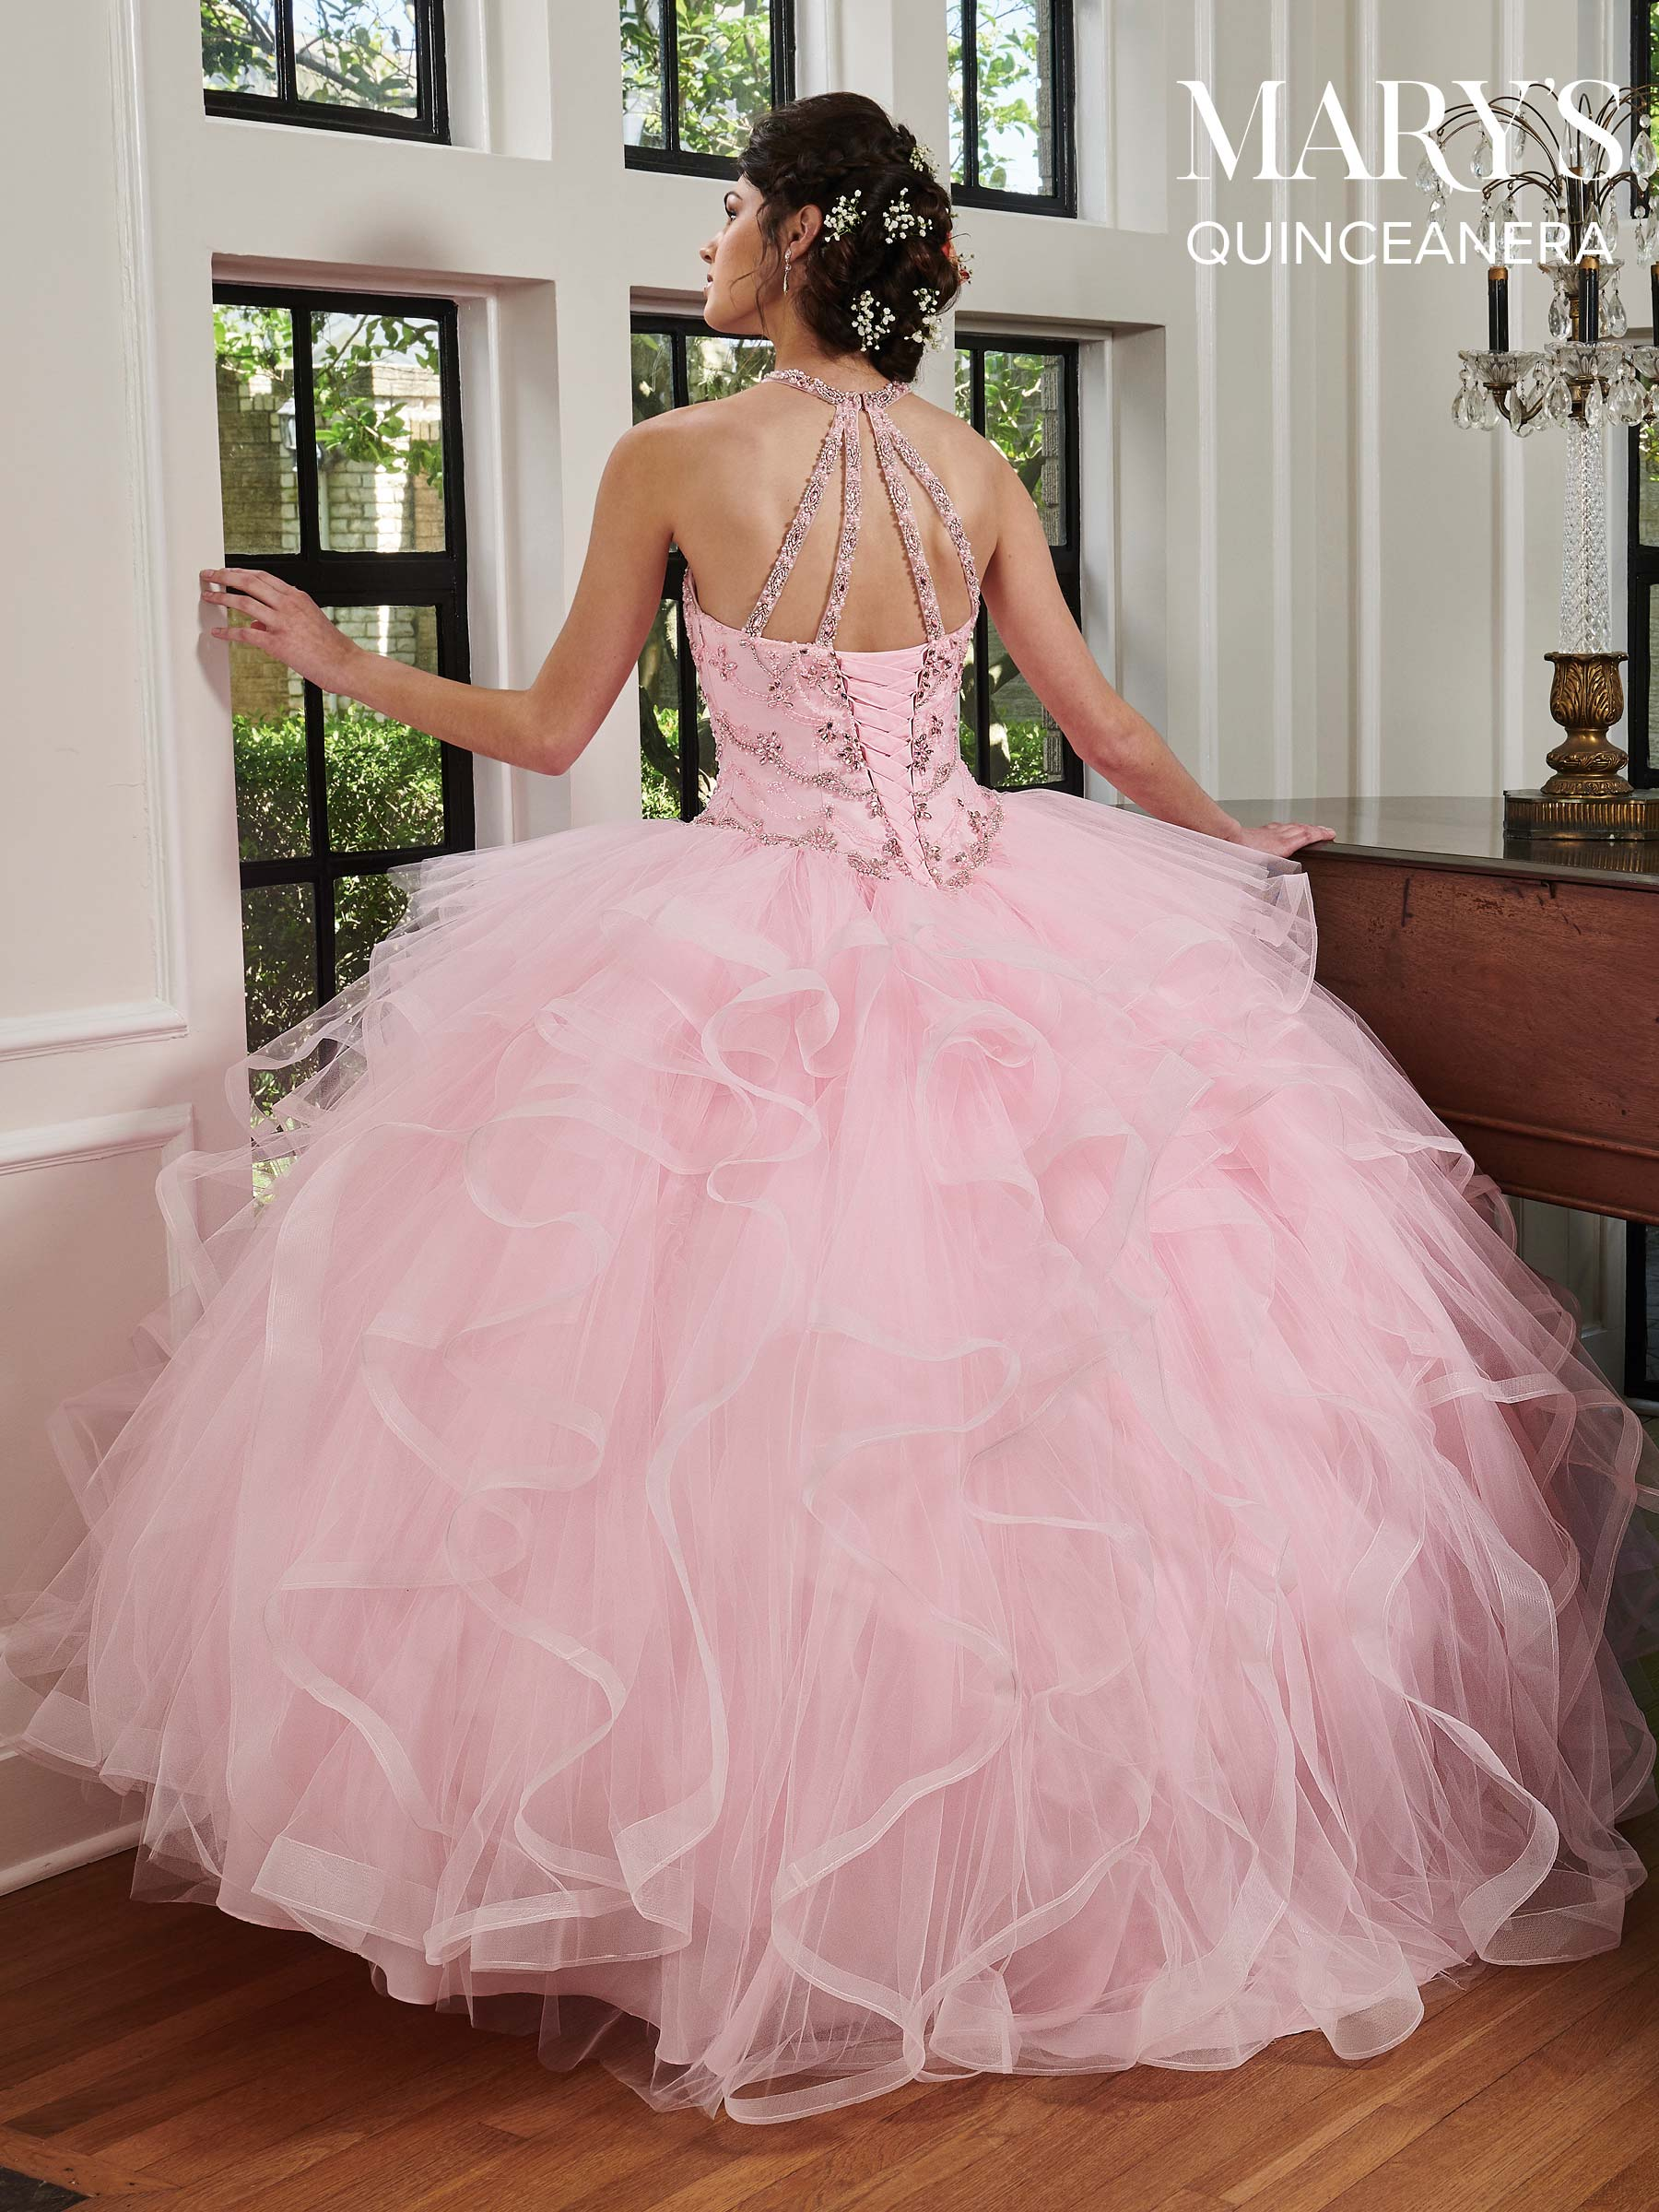 Marys Quinceanera Dresses | Mary's Quinceanera | Style - MQ2040